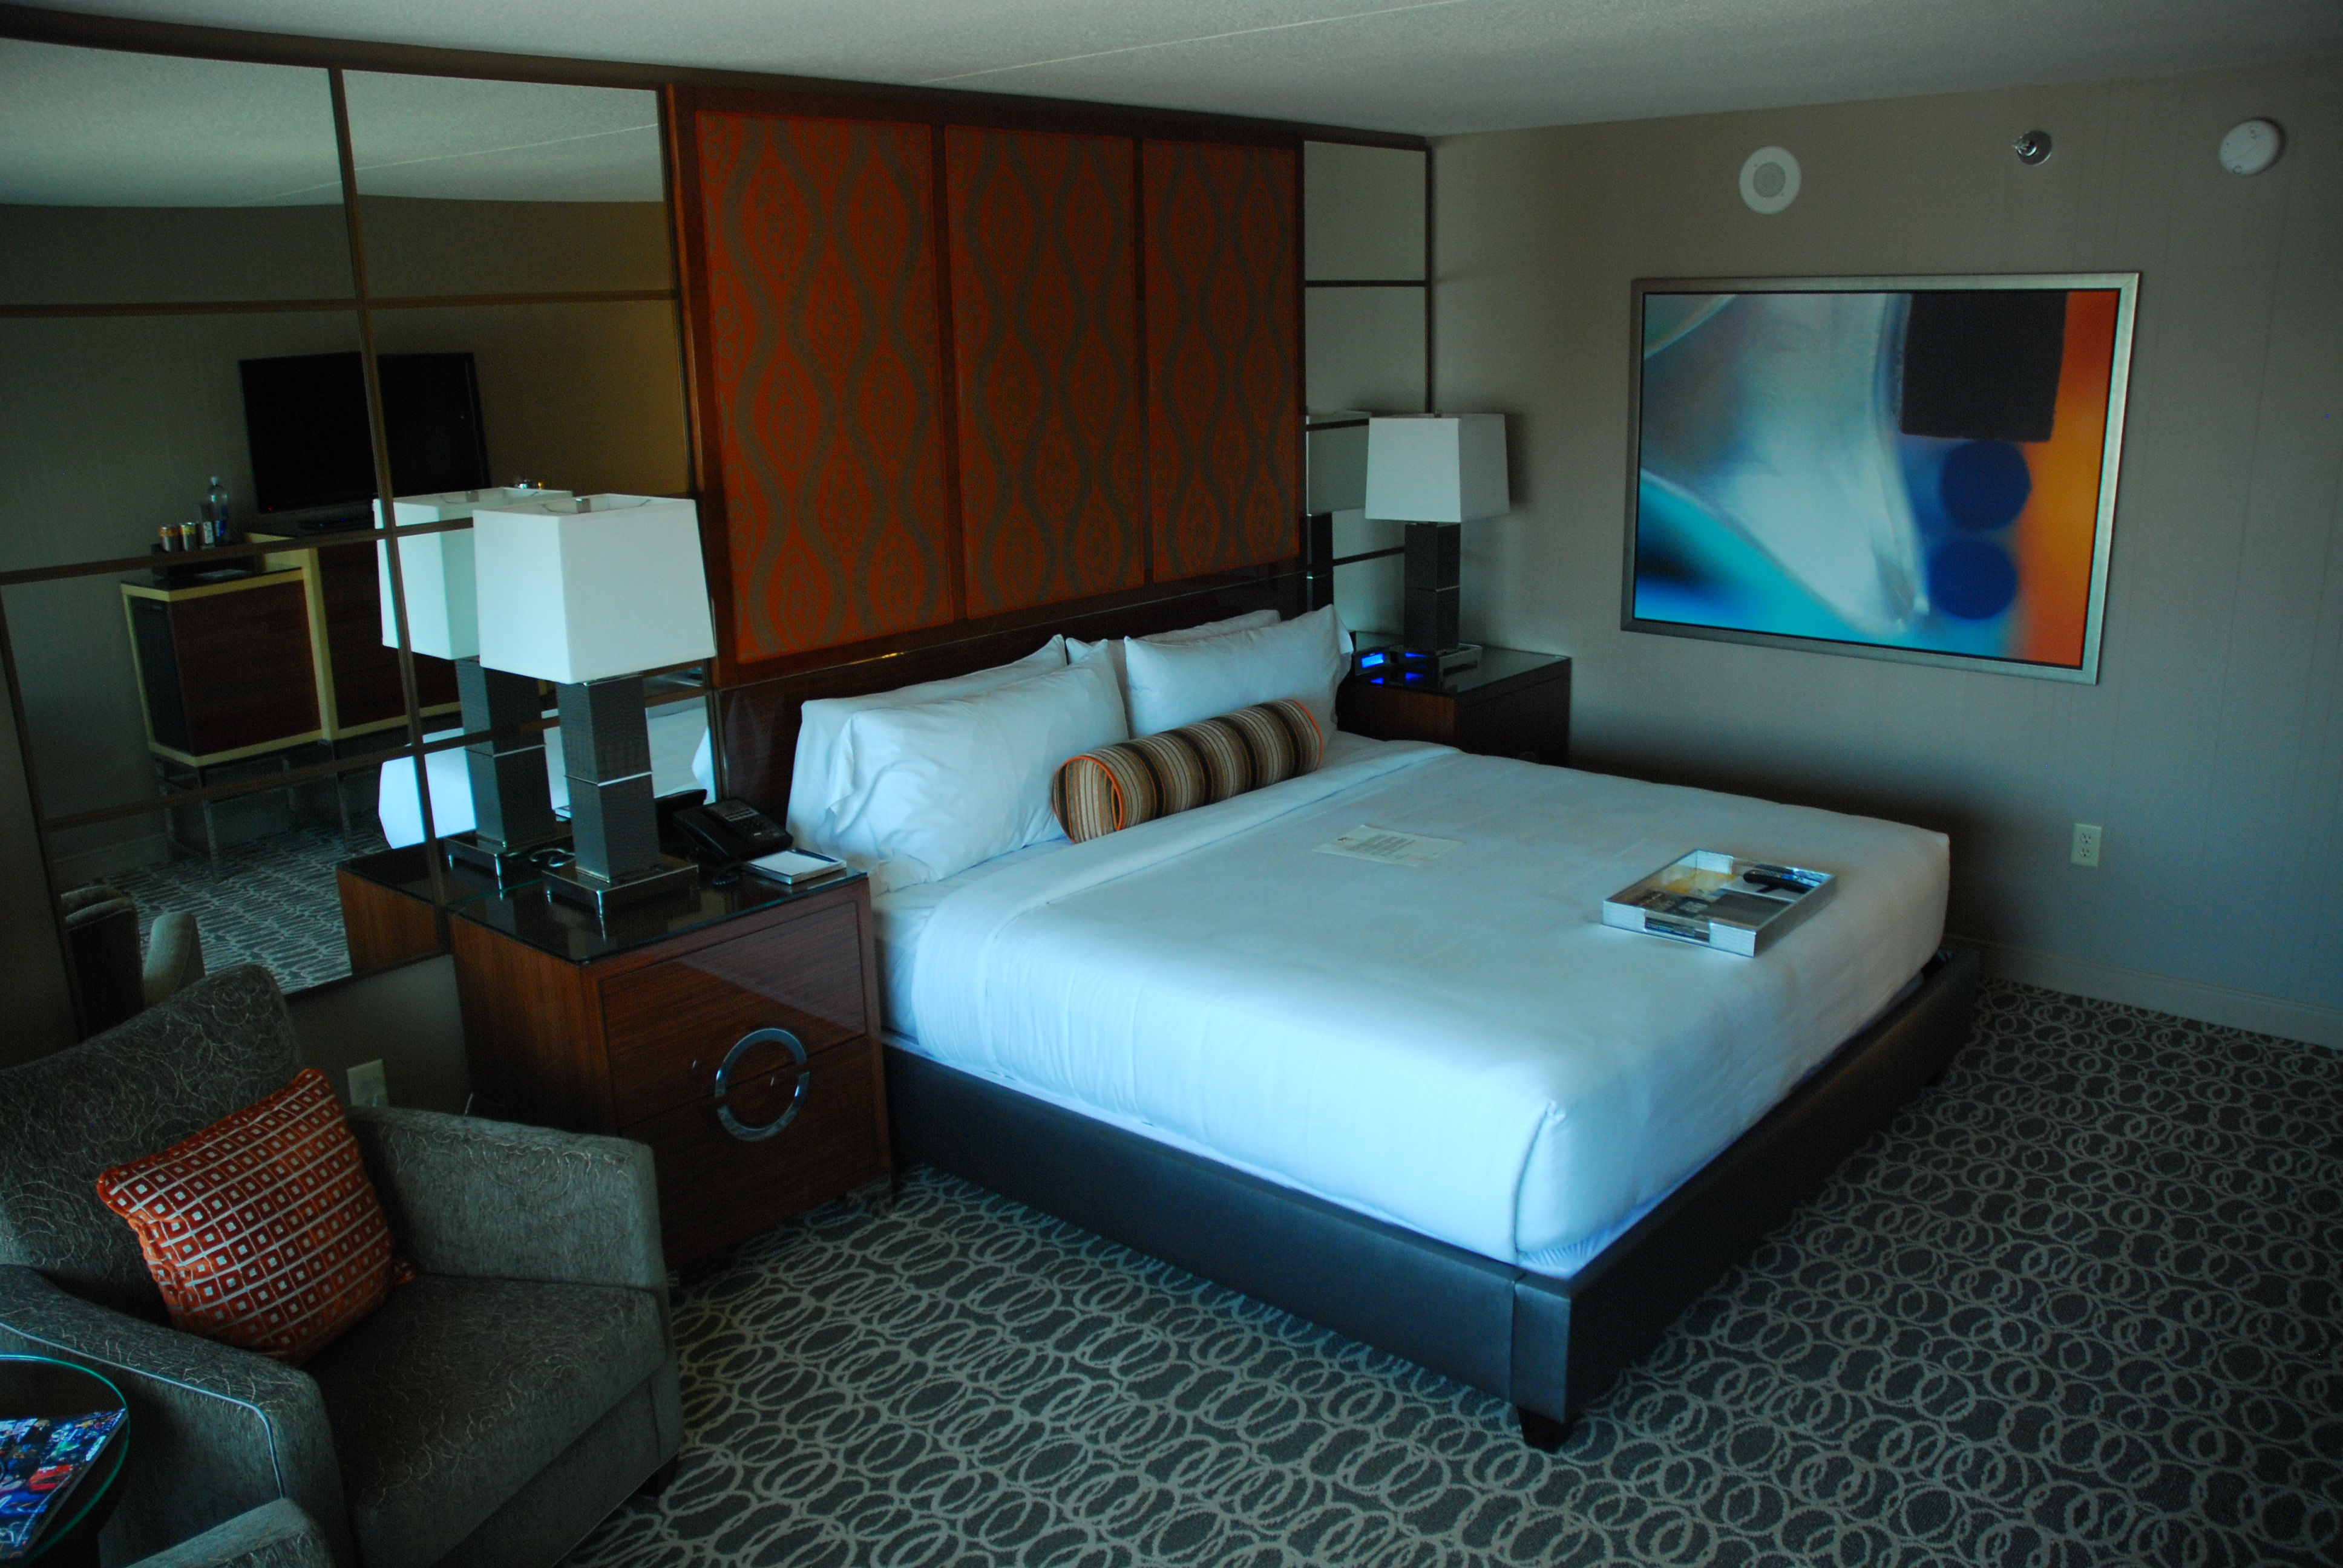 Hotels near MGM Grand Arena, Las Vegas on TripAdvisor: Find , traveler reviews, 53, candid photos, and prices for 30 hotels near MGM Grand Arena in Las Vegas, NV.